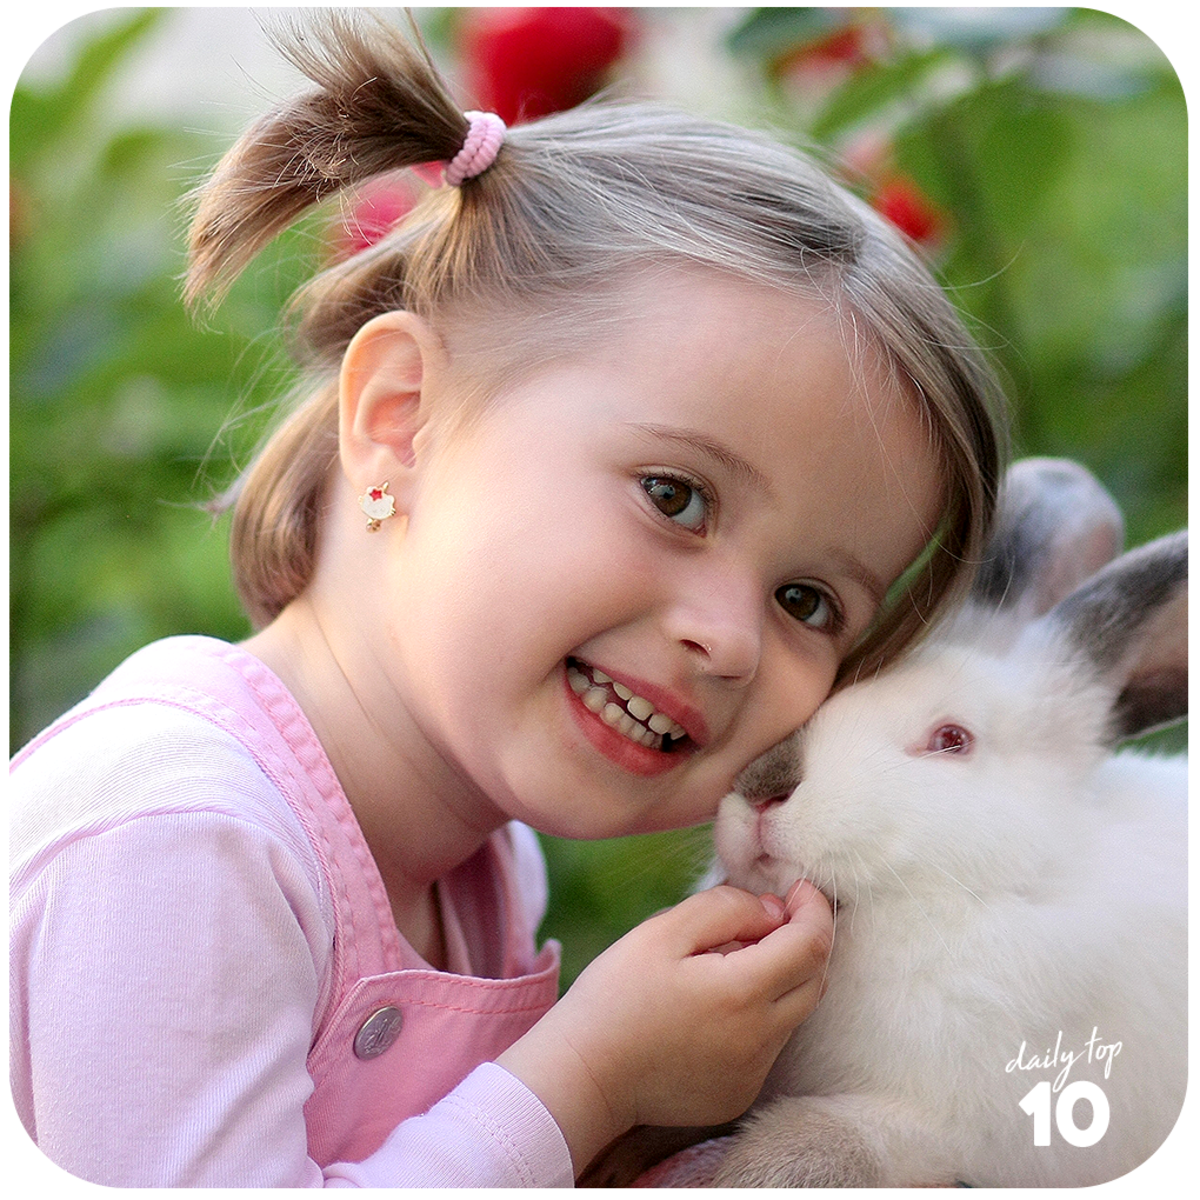 A pet can teach your kid how to take responsibility and care for the weak.